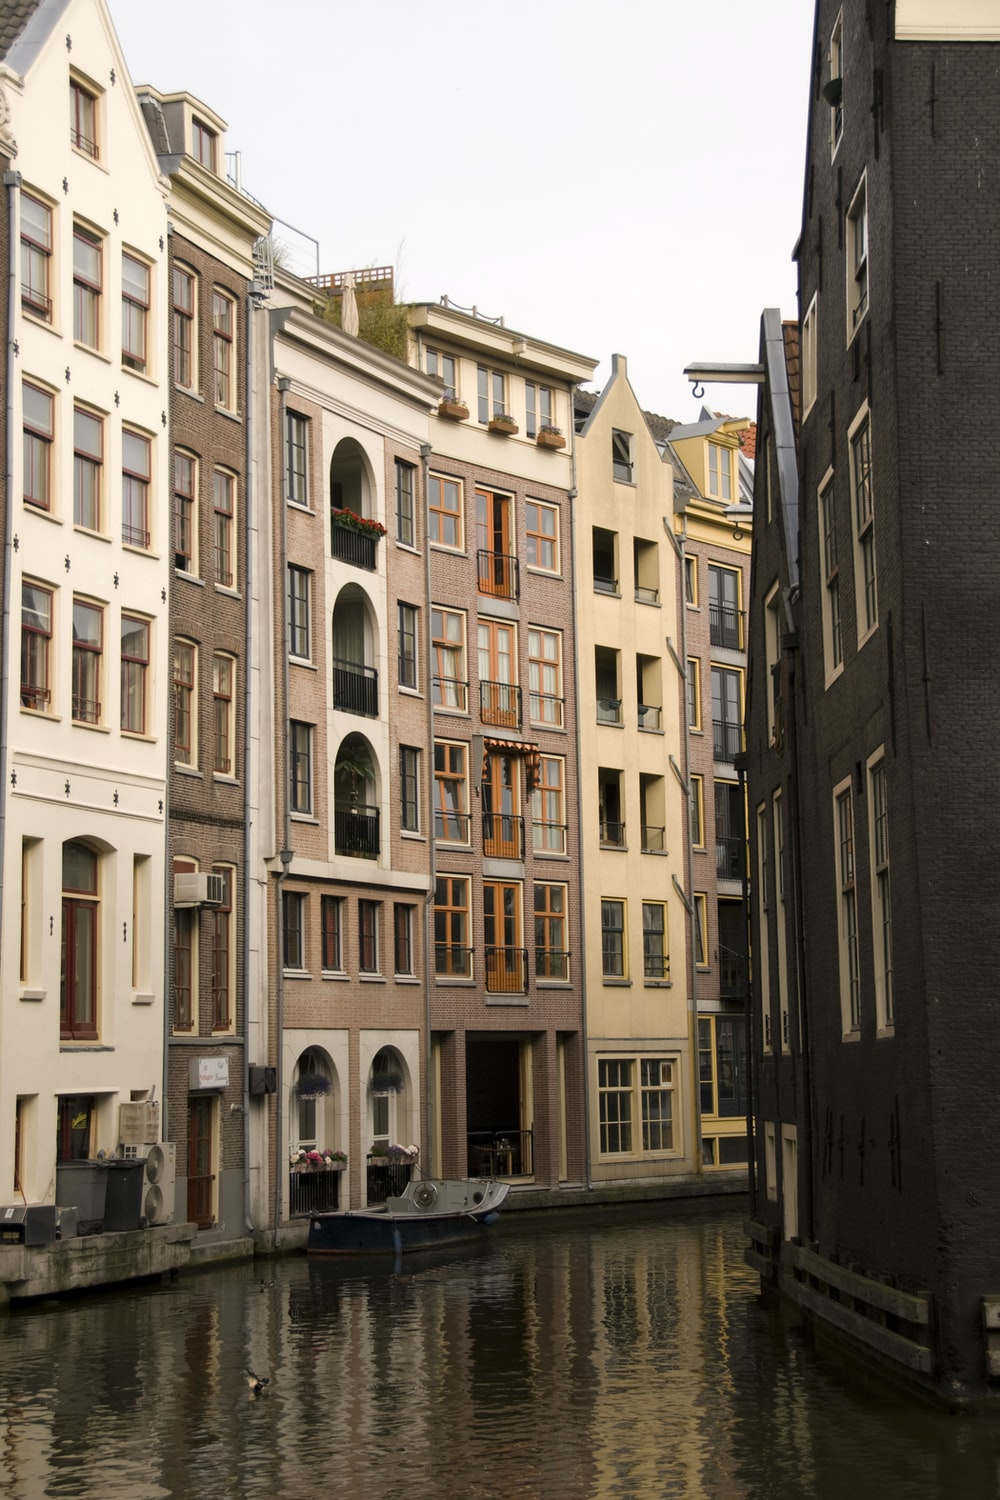 canal surrounded by buildings